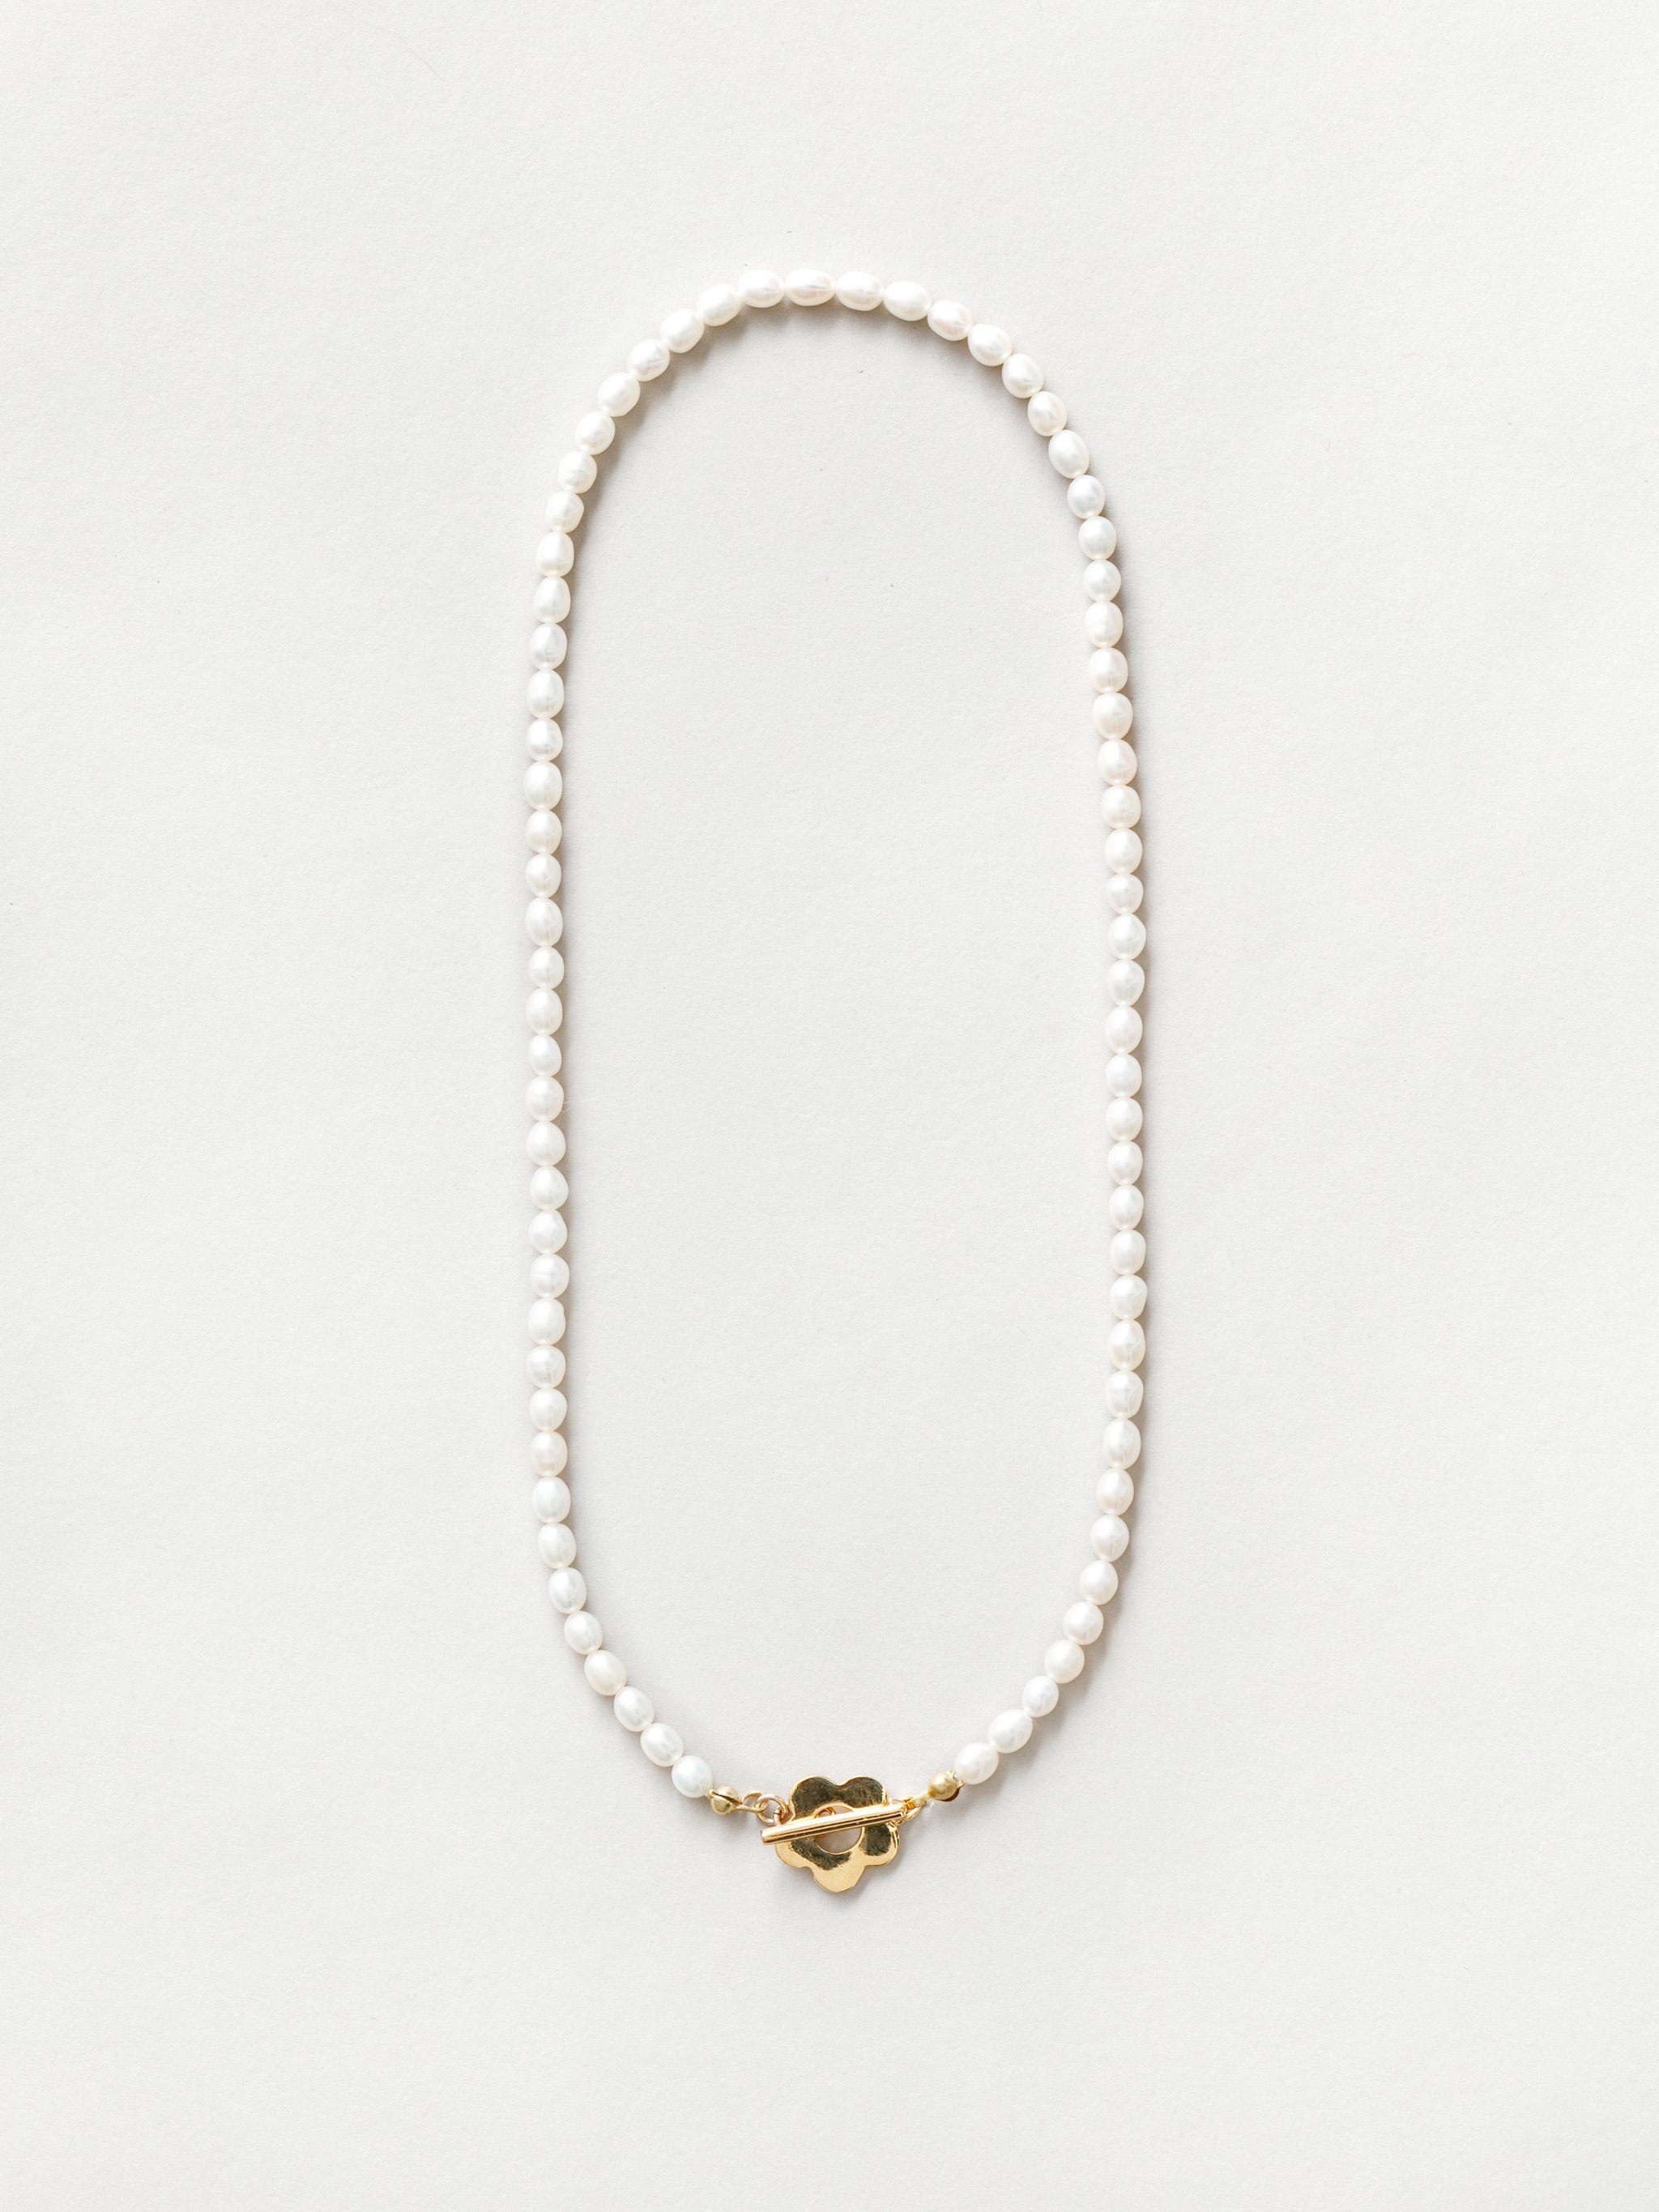 Sofia Necklace in Gold